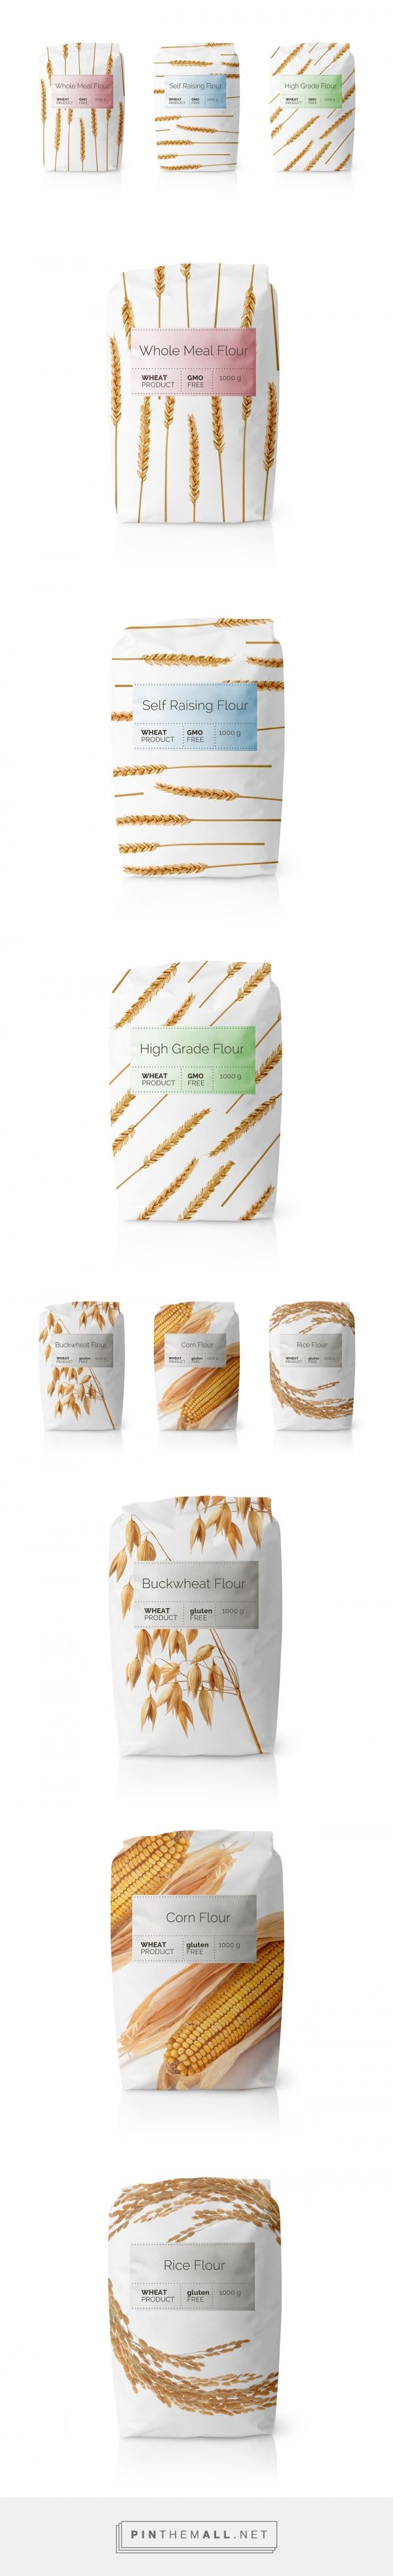 Flour Packaging by MAISON D'IDÉE | Fivestar Branding Agency – Design and Branding Agency & Curated Inspiration Gallery